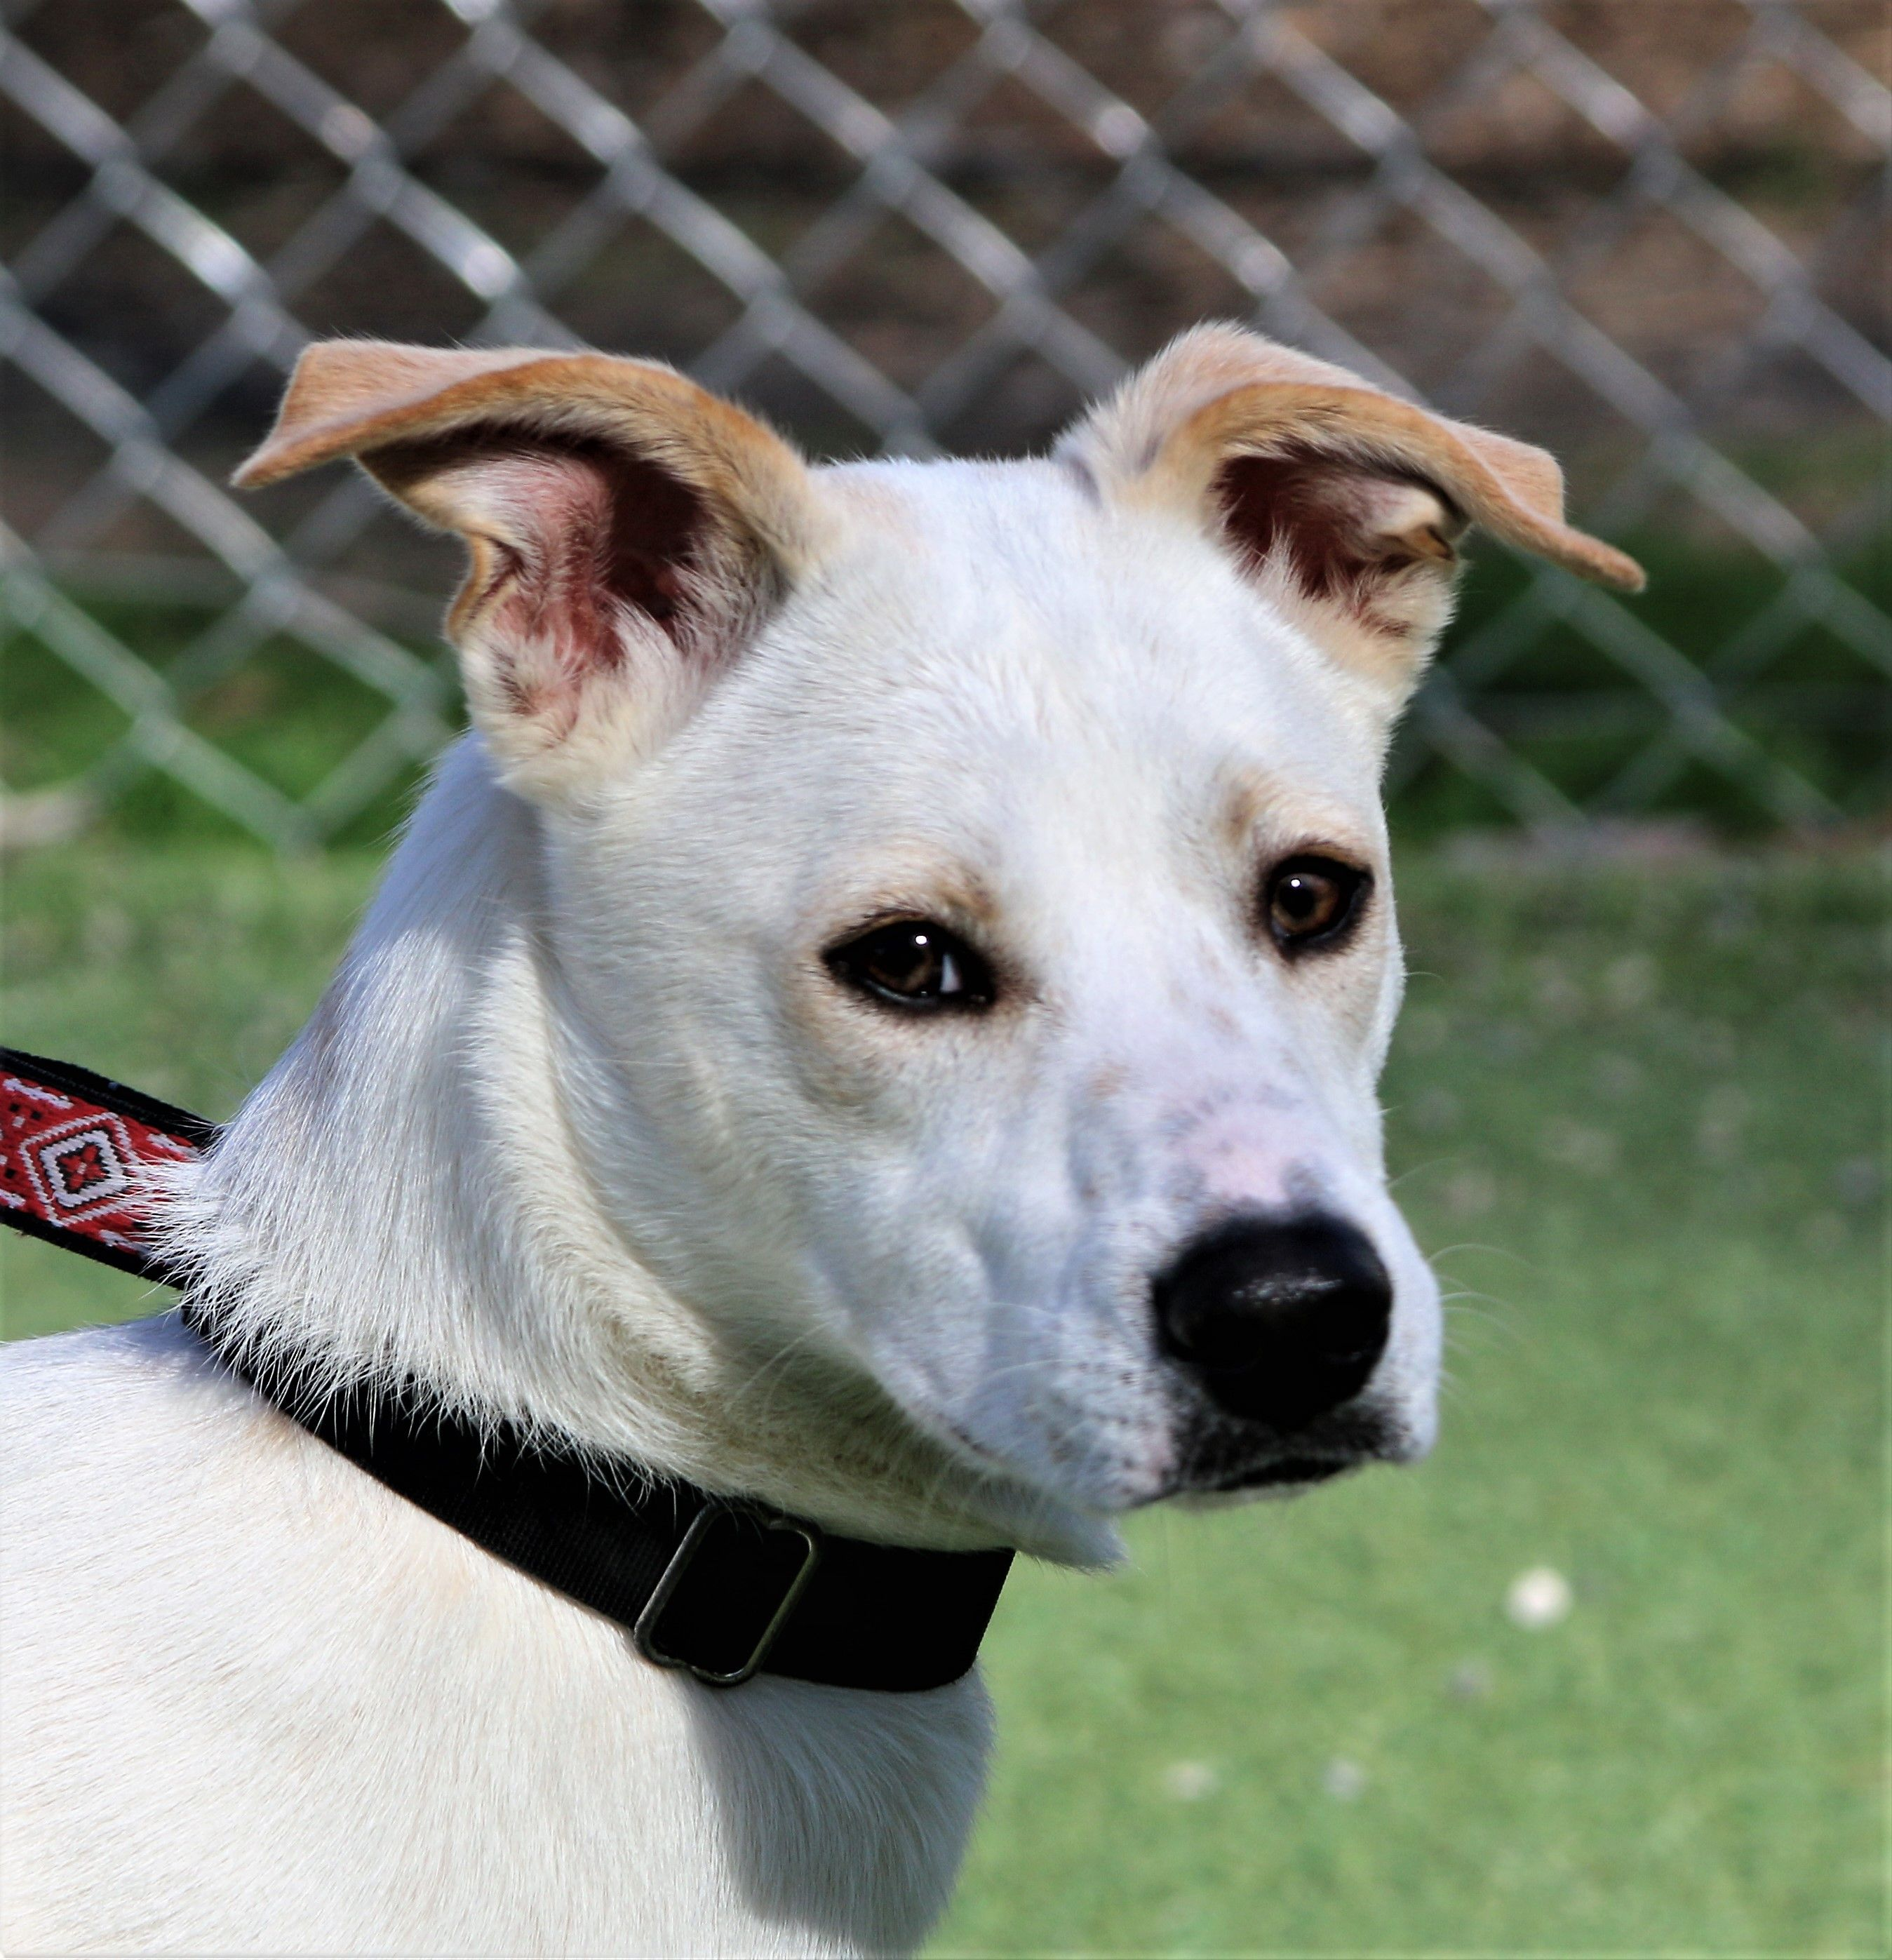 Boxador Dog For Adoption In Asheville Nc Adn 435794 On Puppyfinder Com Gender Female Age Young Dogs For Adoption Dogs Adoption Rescue Dogs